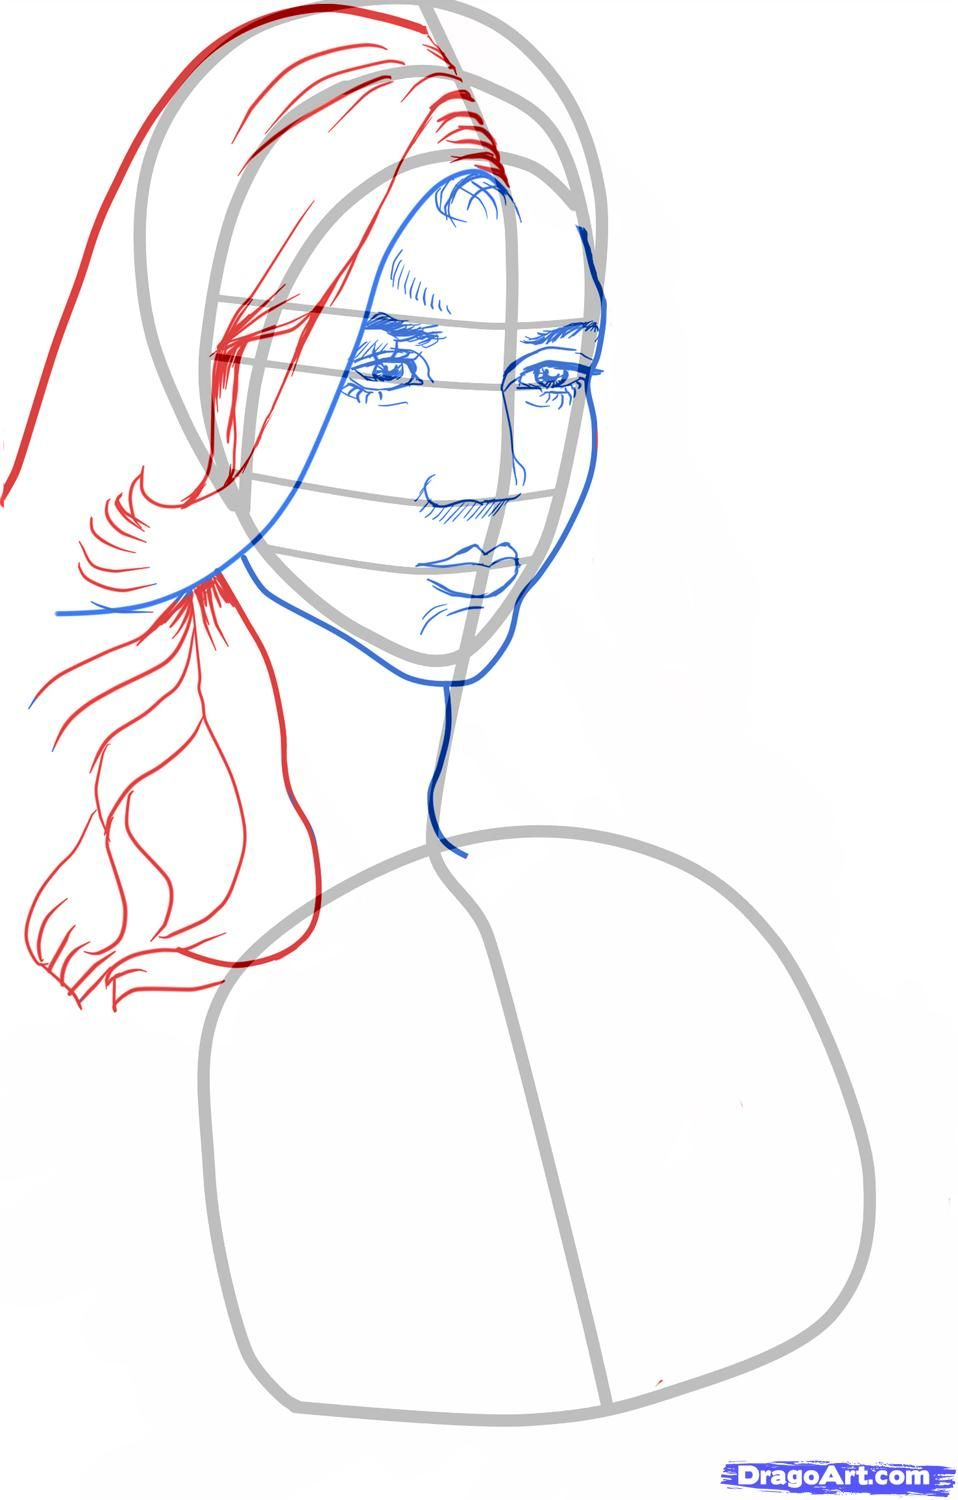 How to draw Stephane Salvatore's portrait with a pencil step by step 5